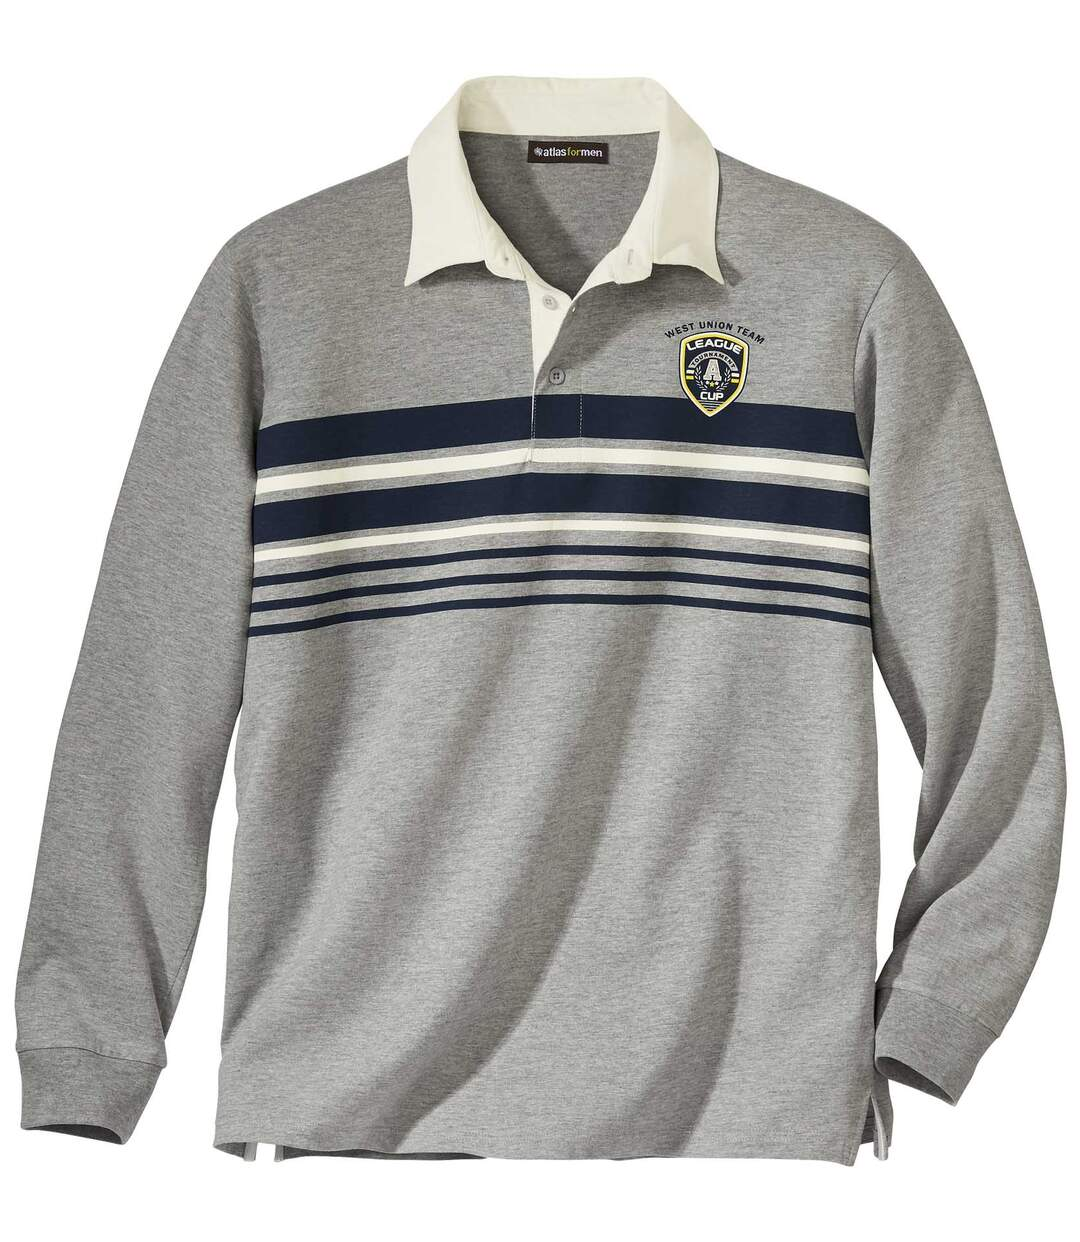 Poloshirt Union League im Rugby-Stil